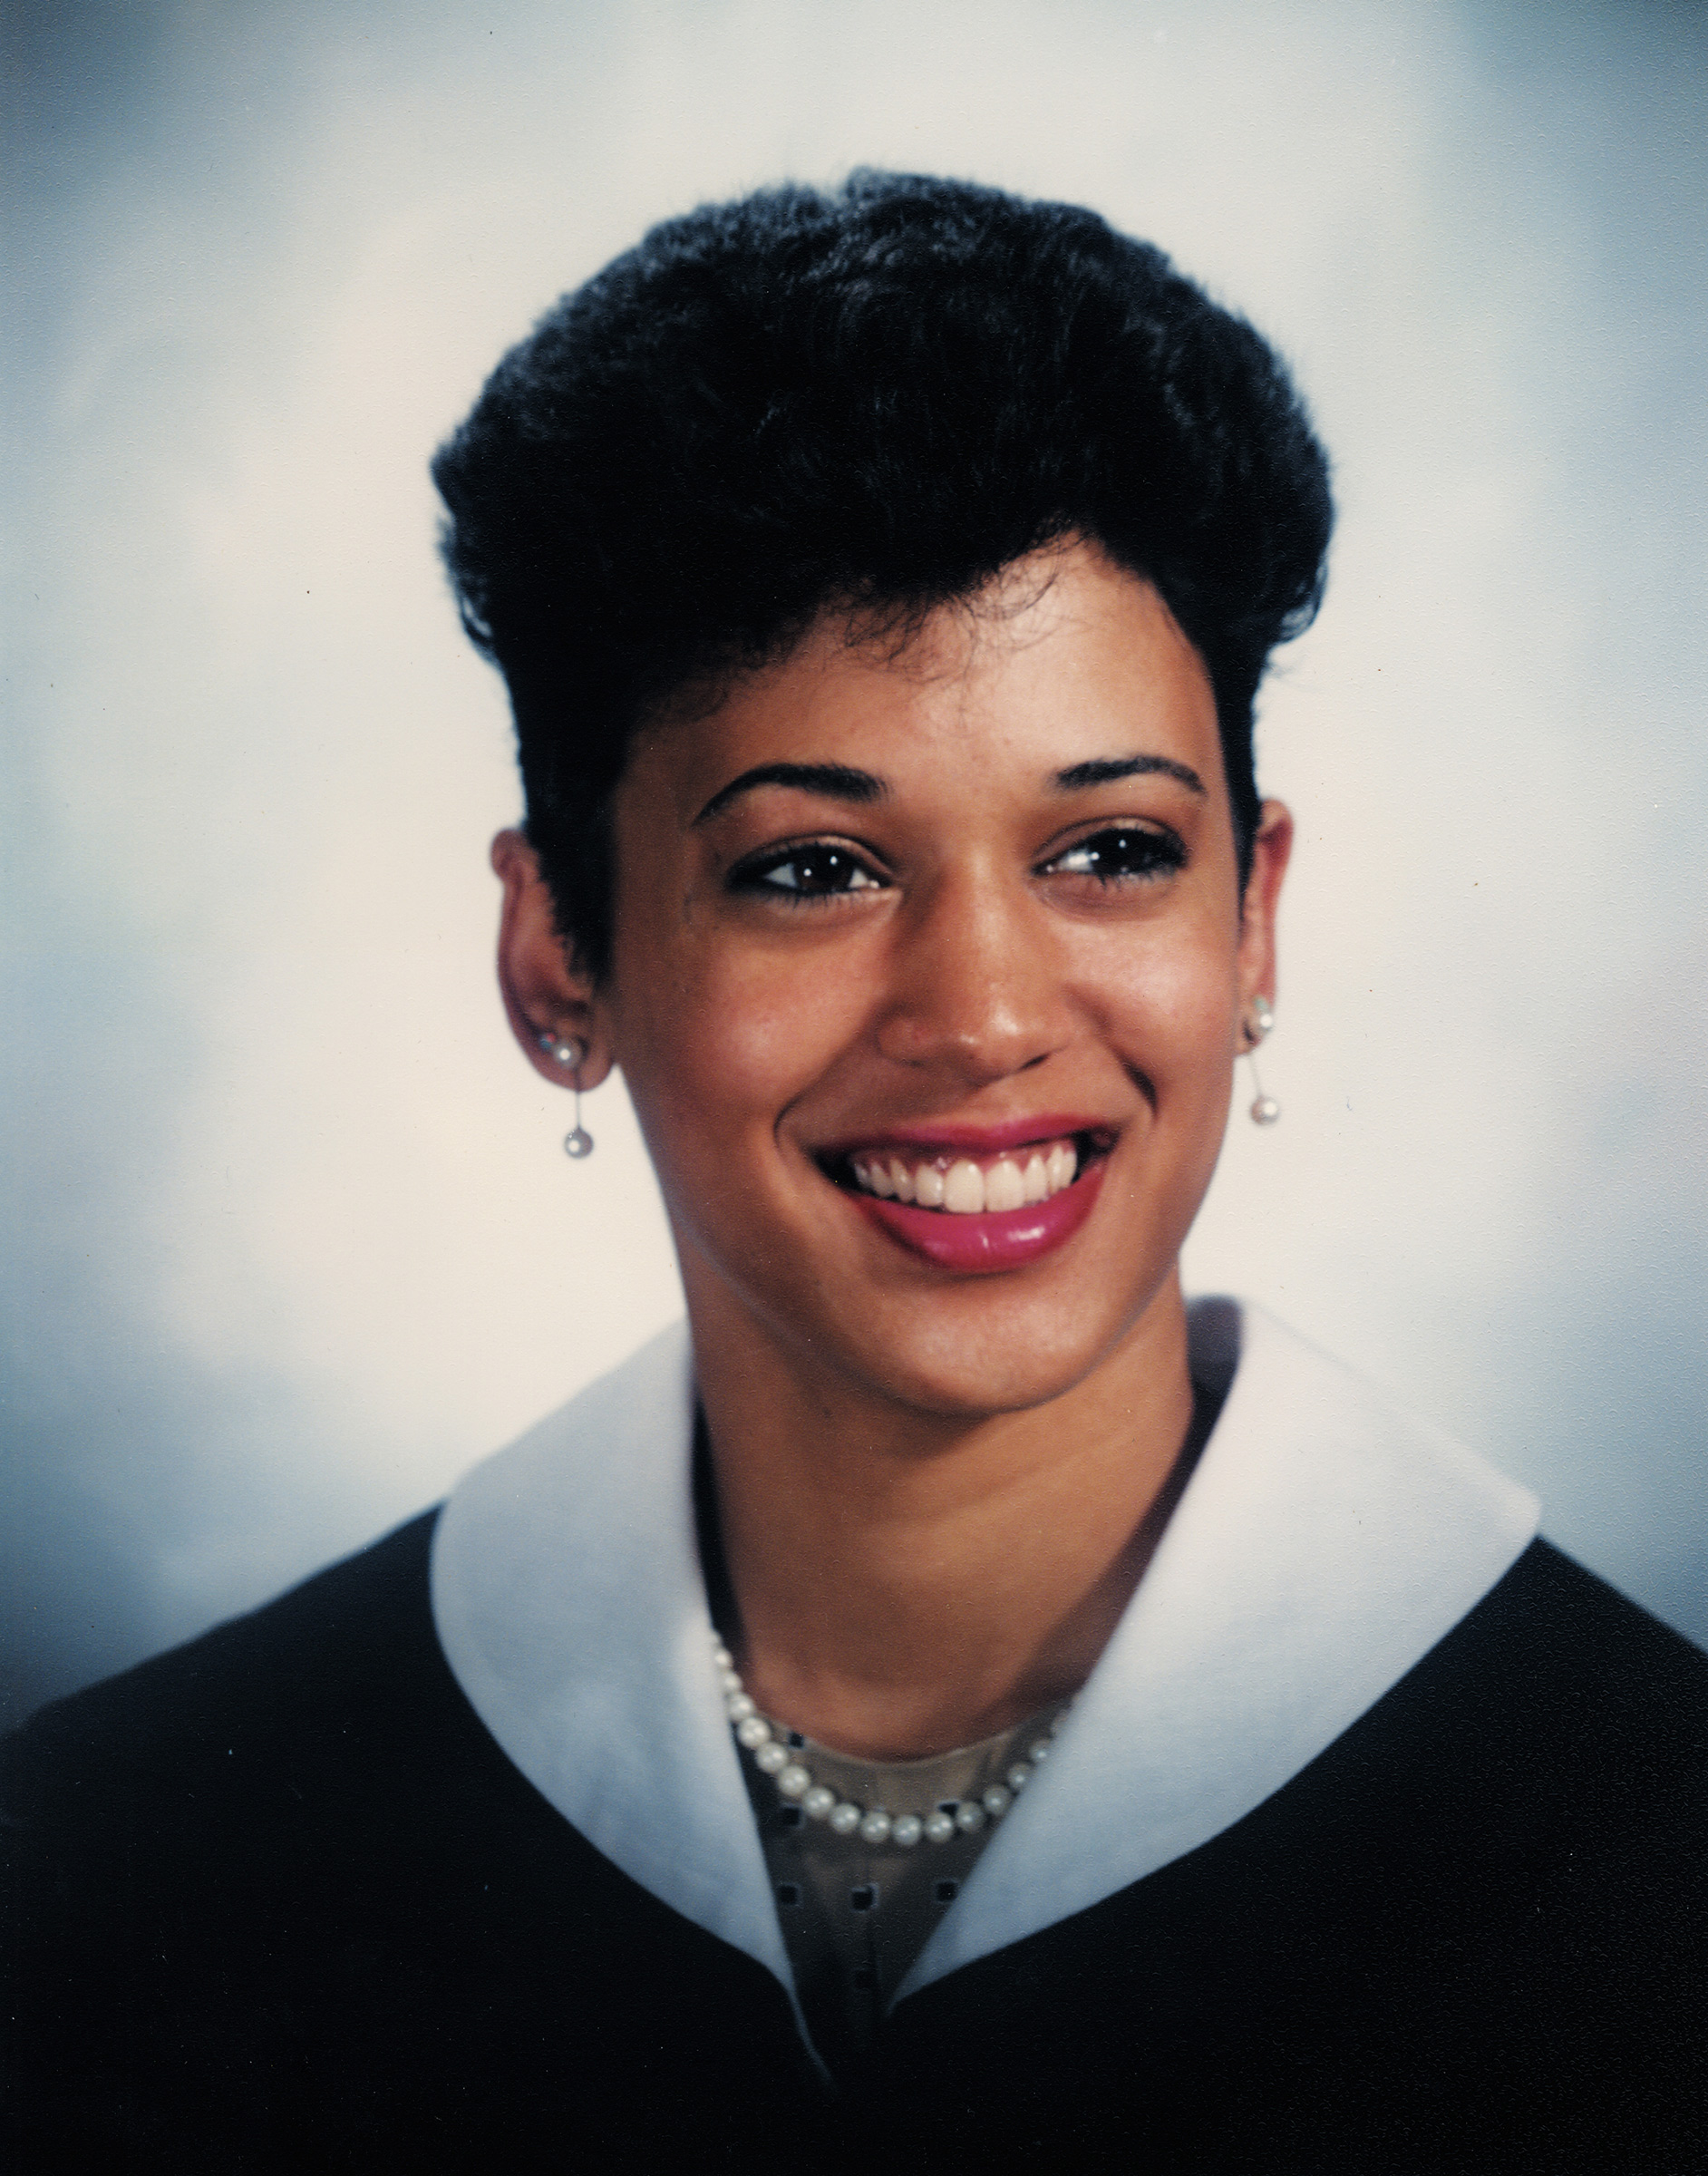 Harris graduates from Howard University, where she was involved with the student government, 1986.